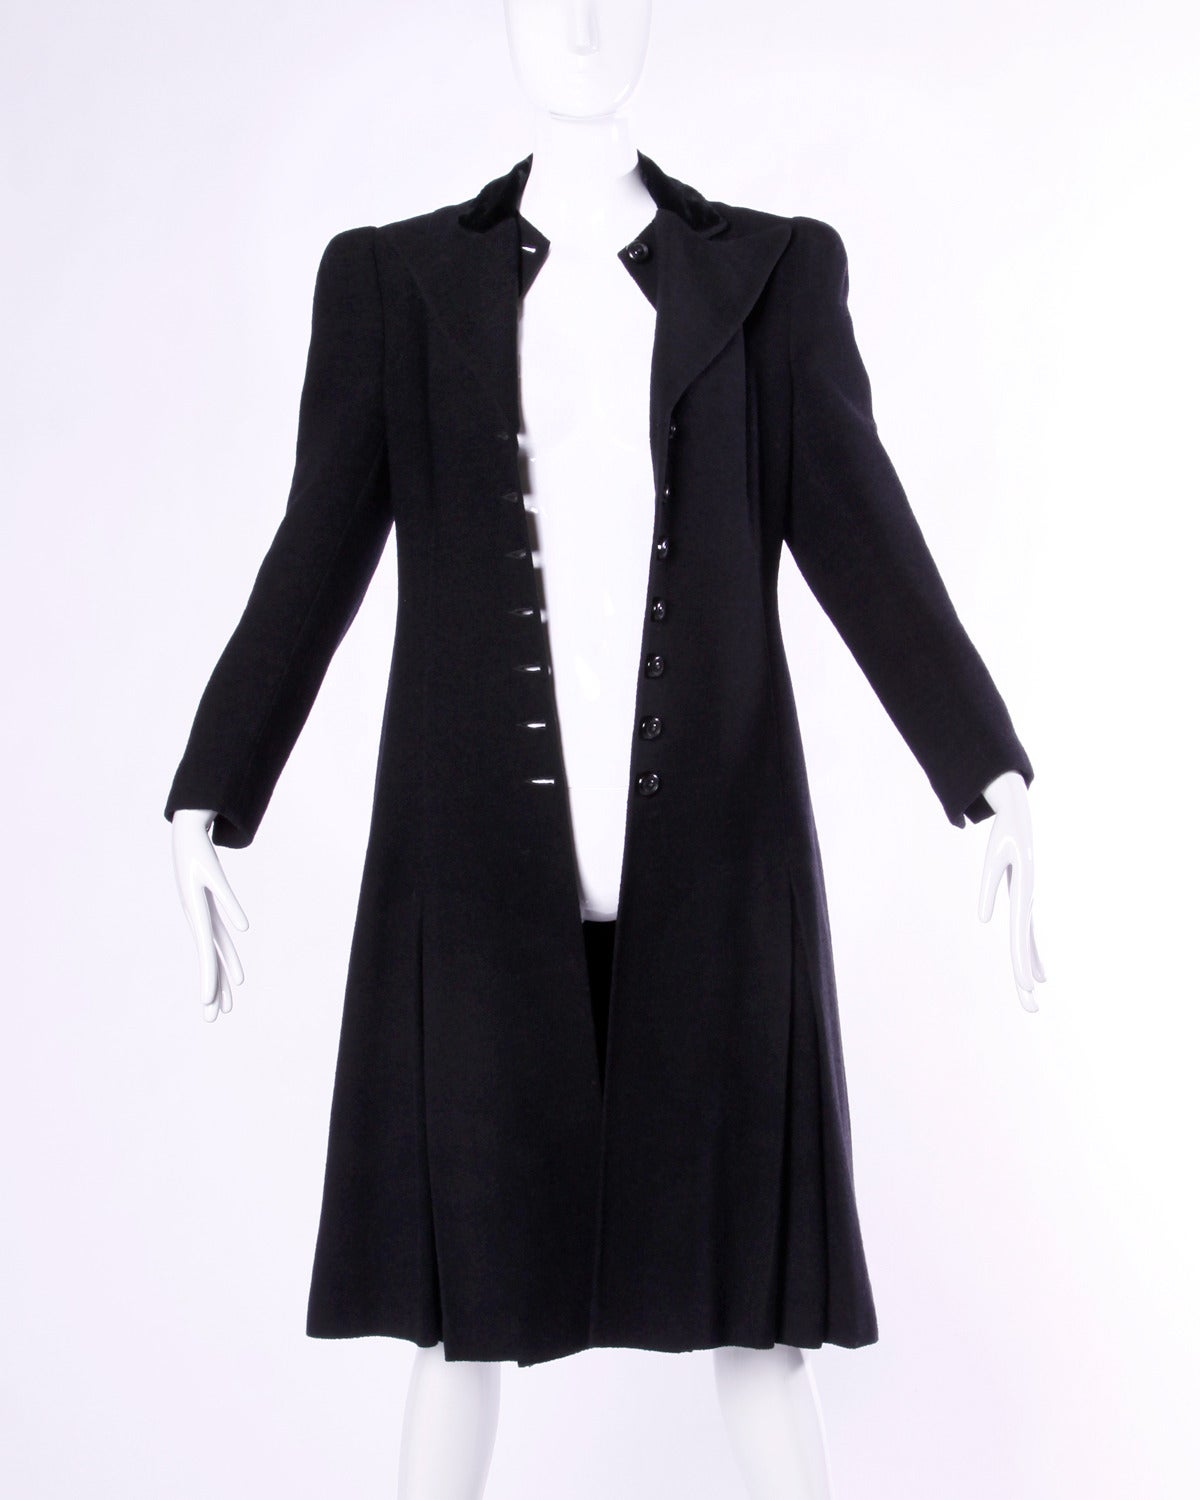 Elegant Vintage 1940s 40s Black Wool Princess Coat with Bold Shoulders For Sale 4